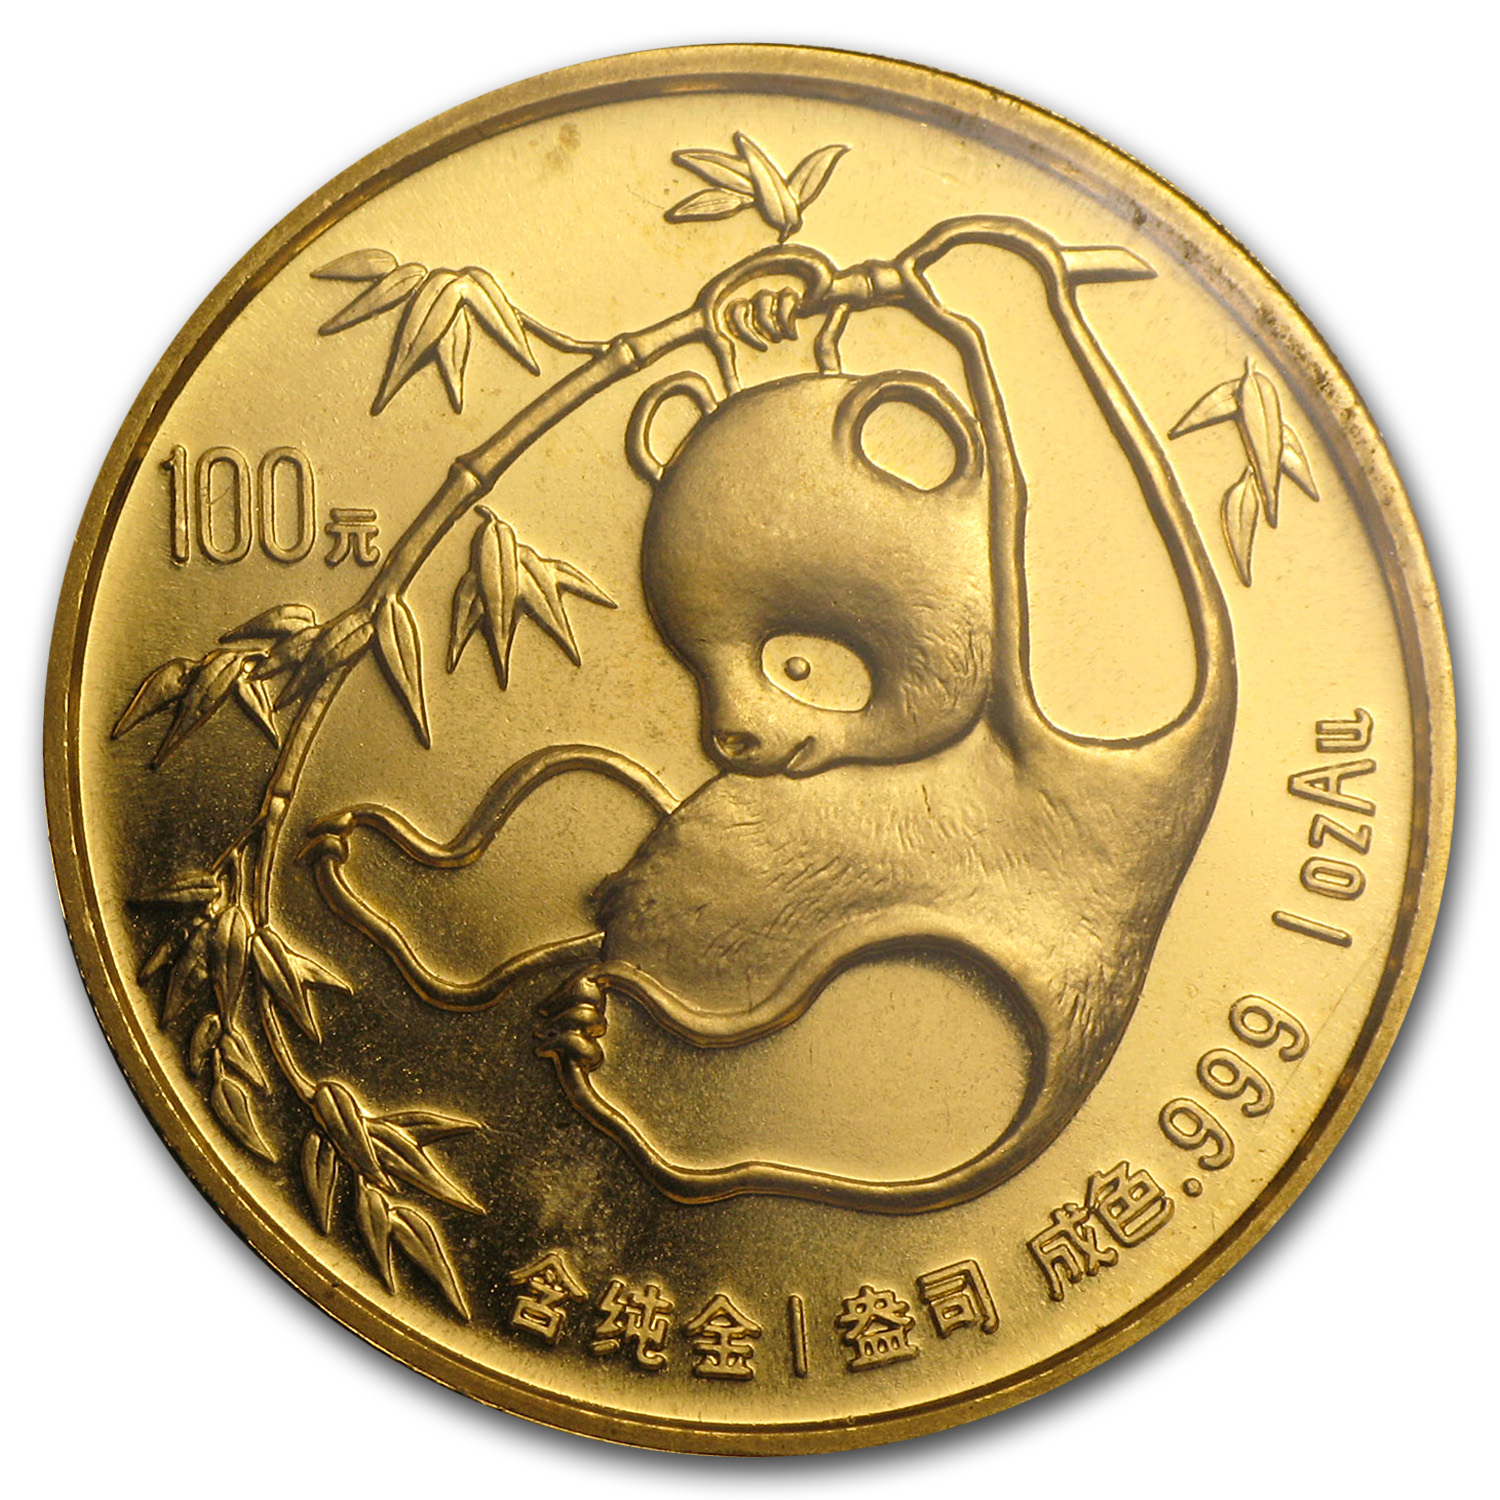 1985 1 oz Gold Chinese Panda BU (Sealed)